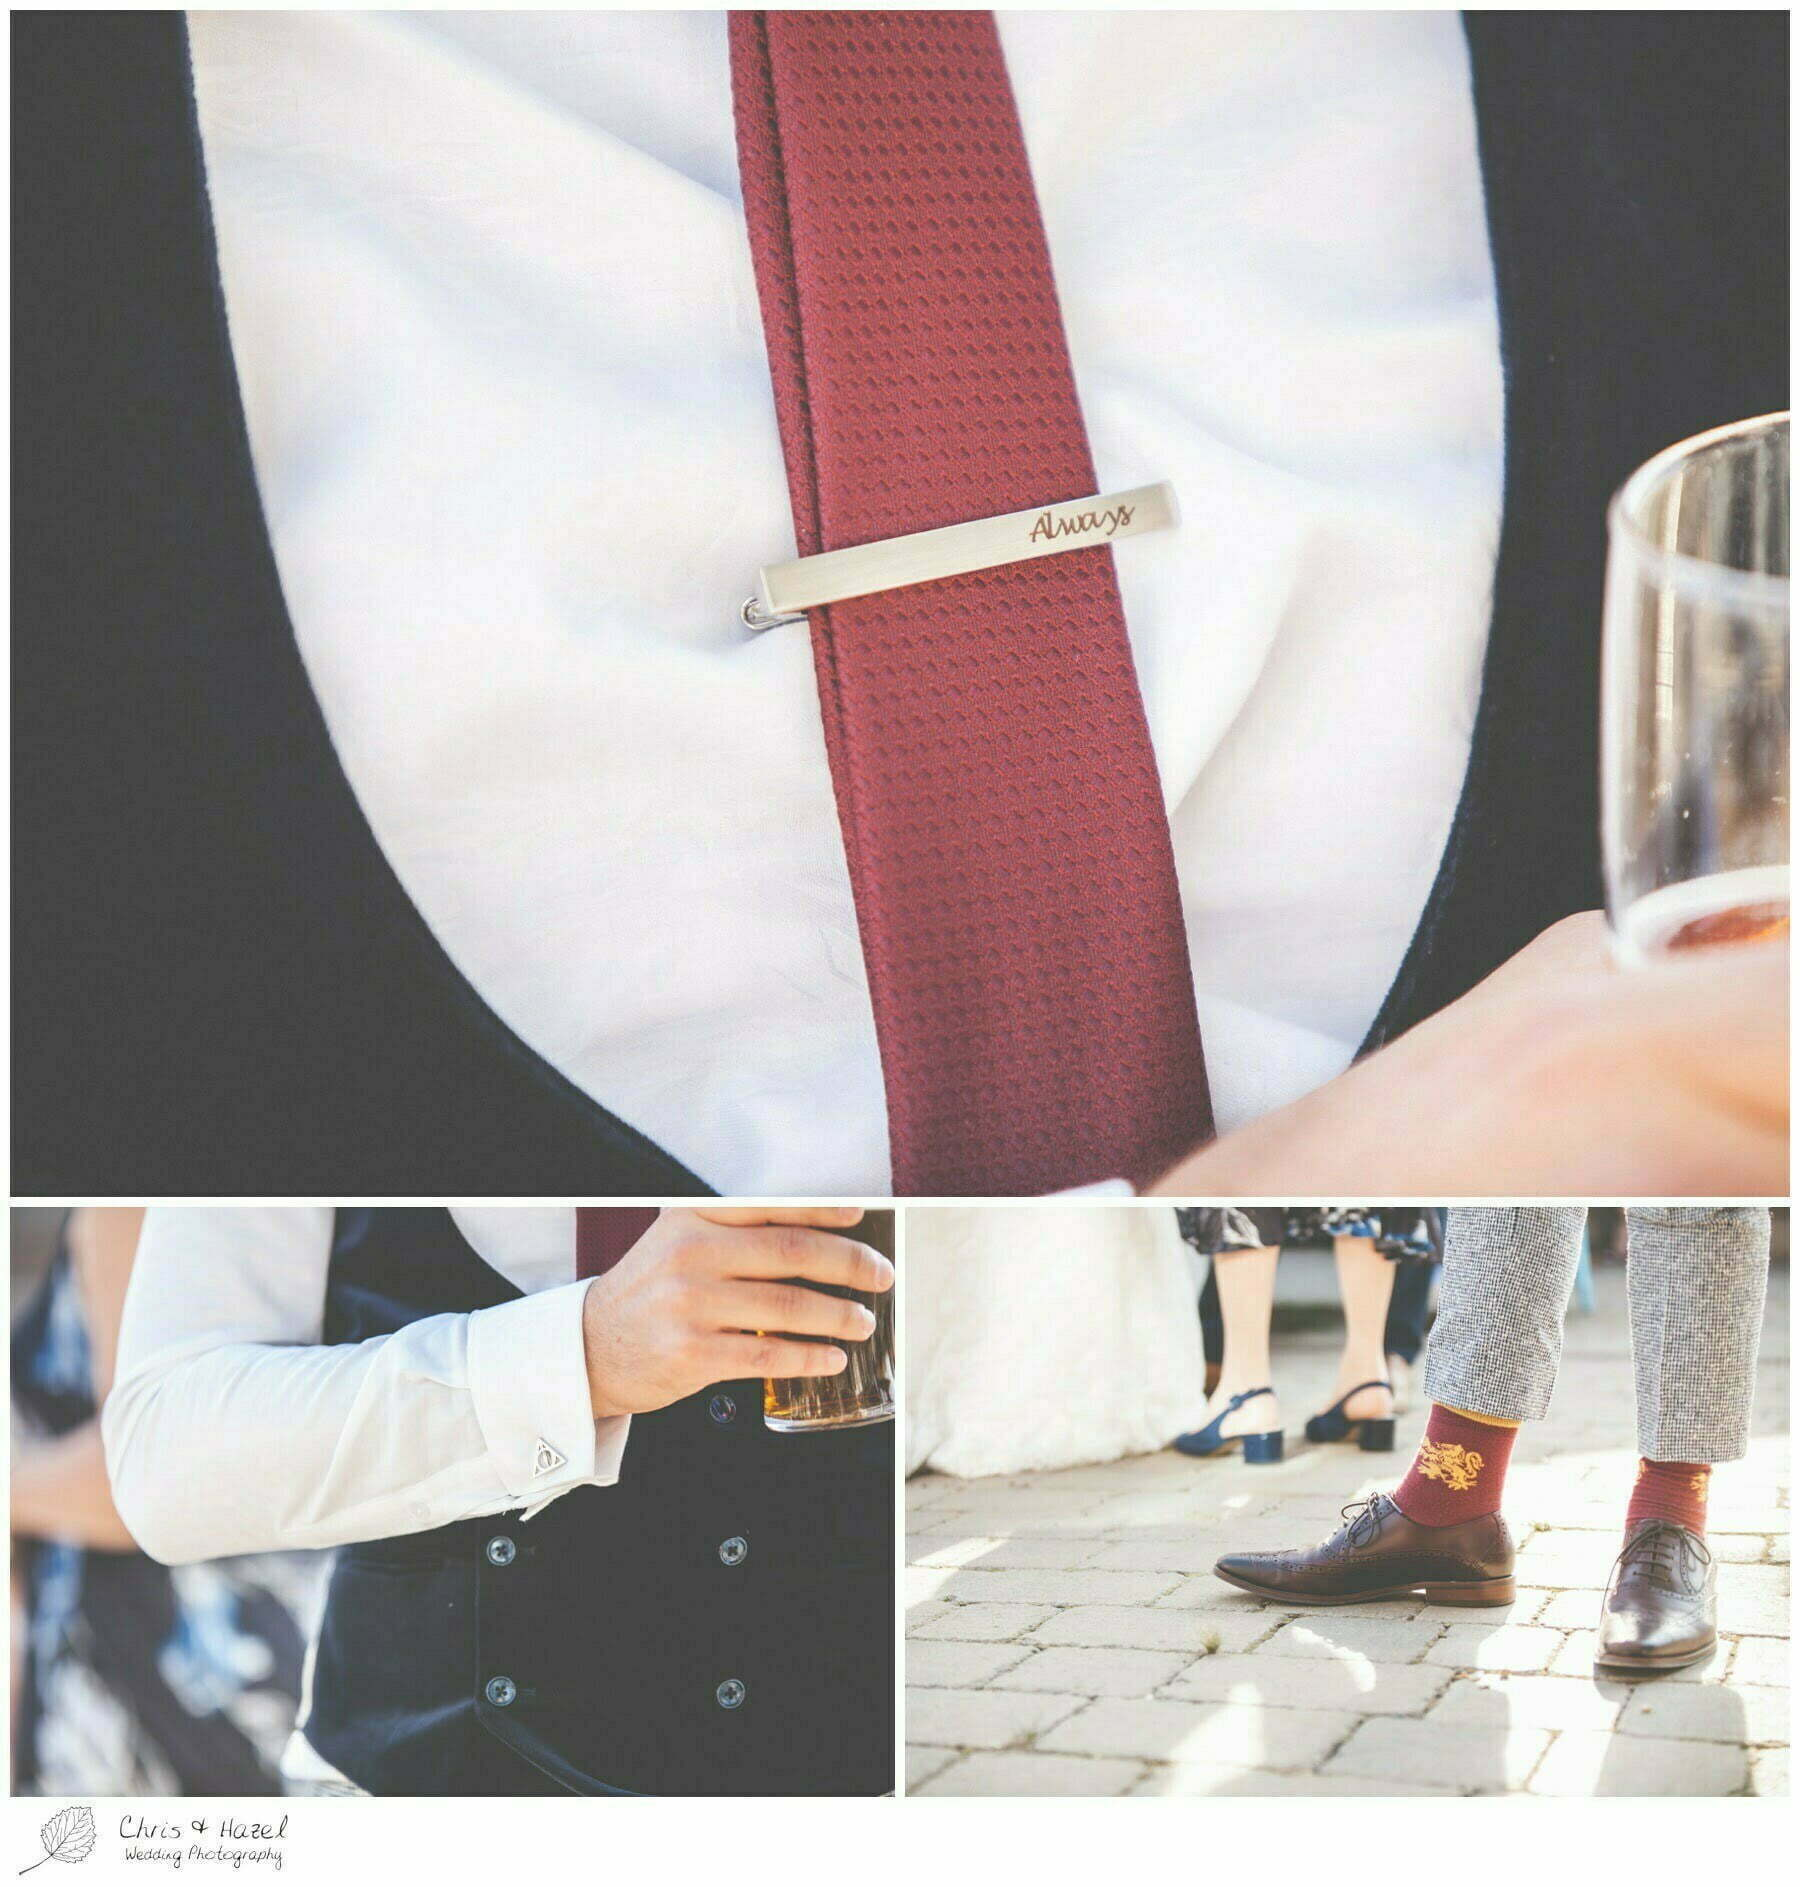 Harry potter wedding details, harry potter wedding theme, always tie pin, gryffindor socks, deathly hallows cufflinks,